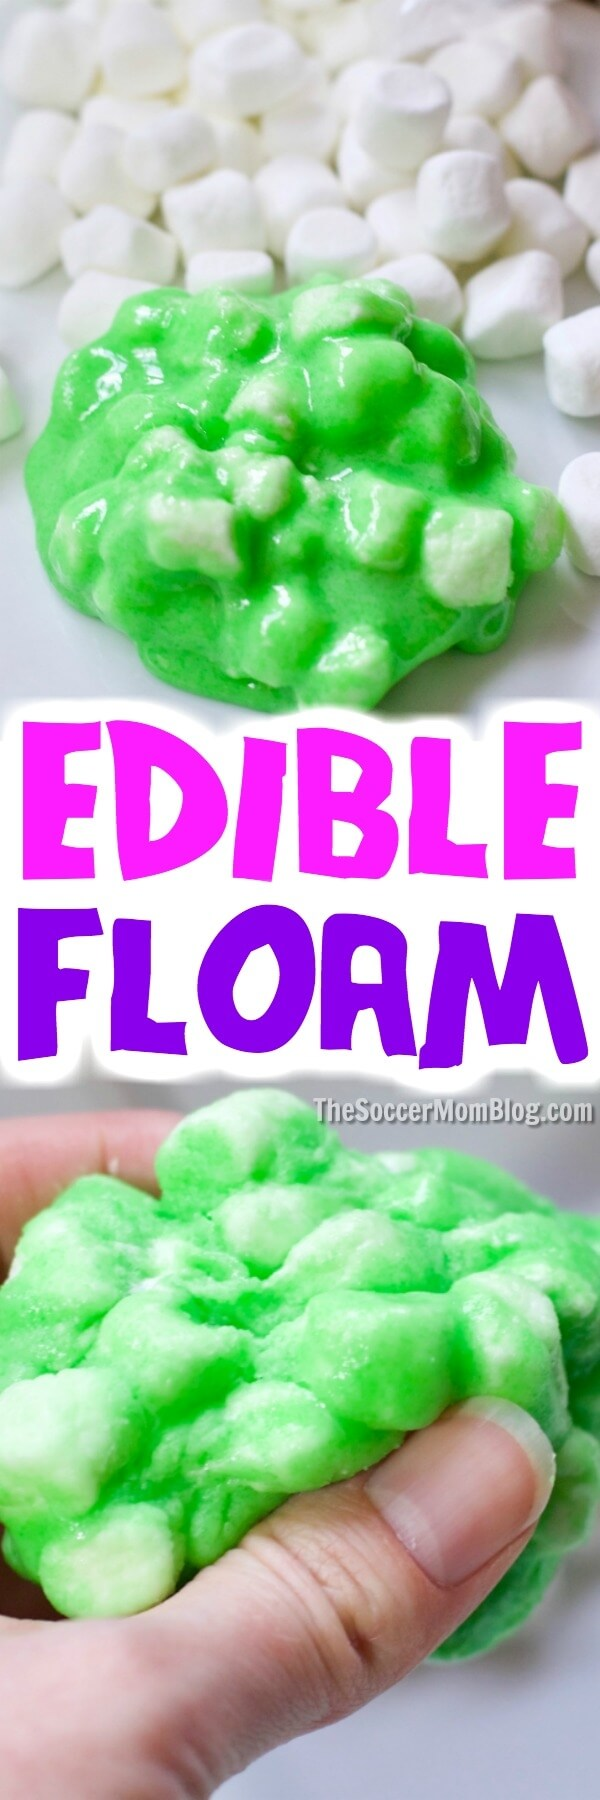 squishing DIY floam slime in hands